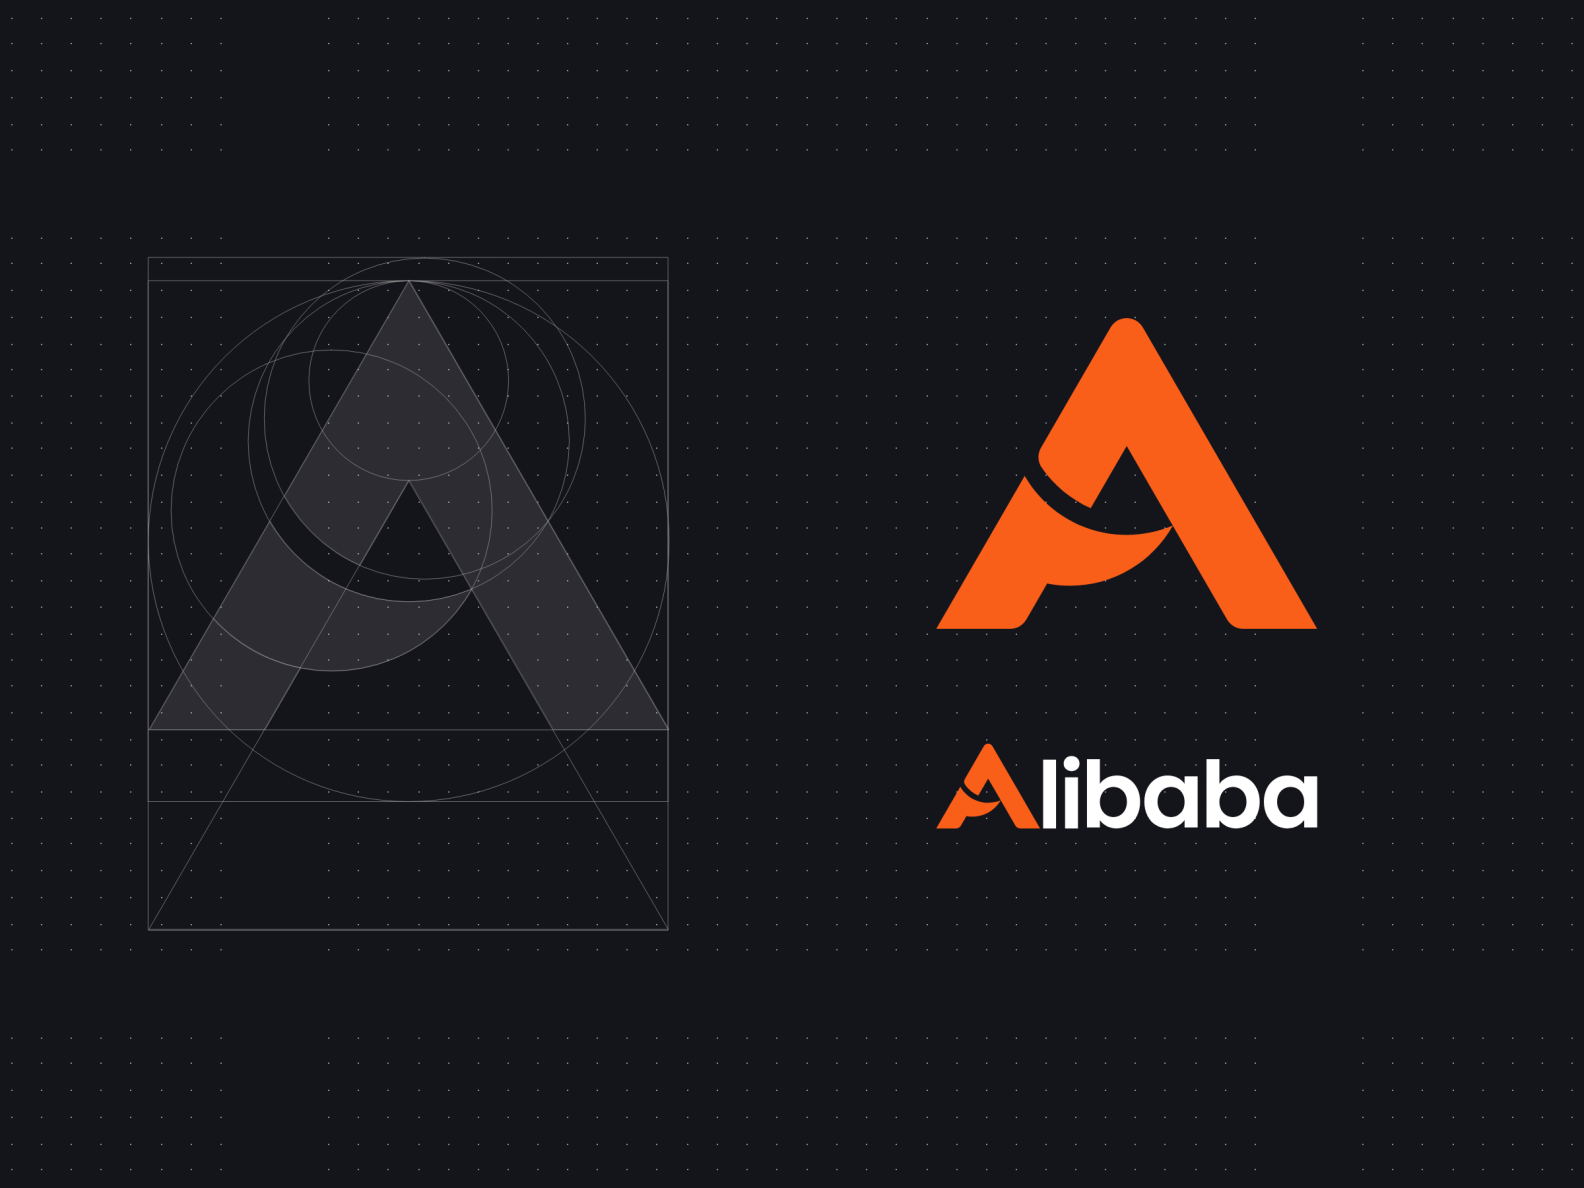 Alibaba Logo Redesign Concept By Tonmoy Sarkar On Dribbble Find the perfect alibaba logo stock photos and editorial news pictures from getty images. alibaba logo redesign concept by tonmoy